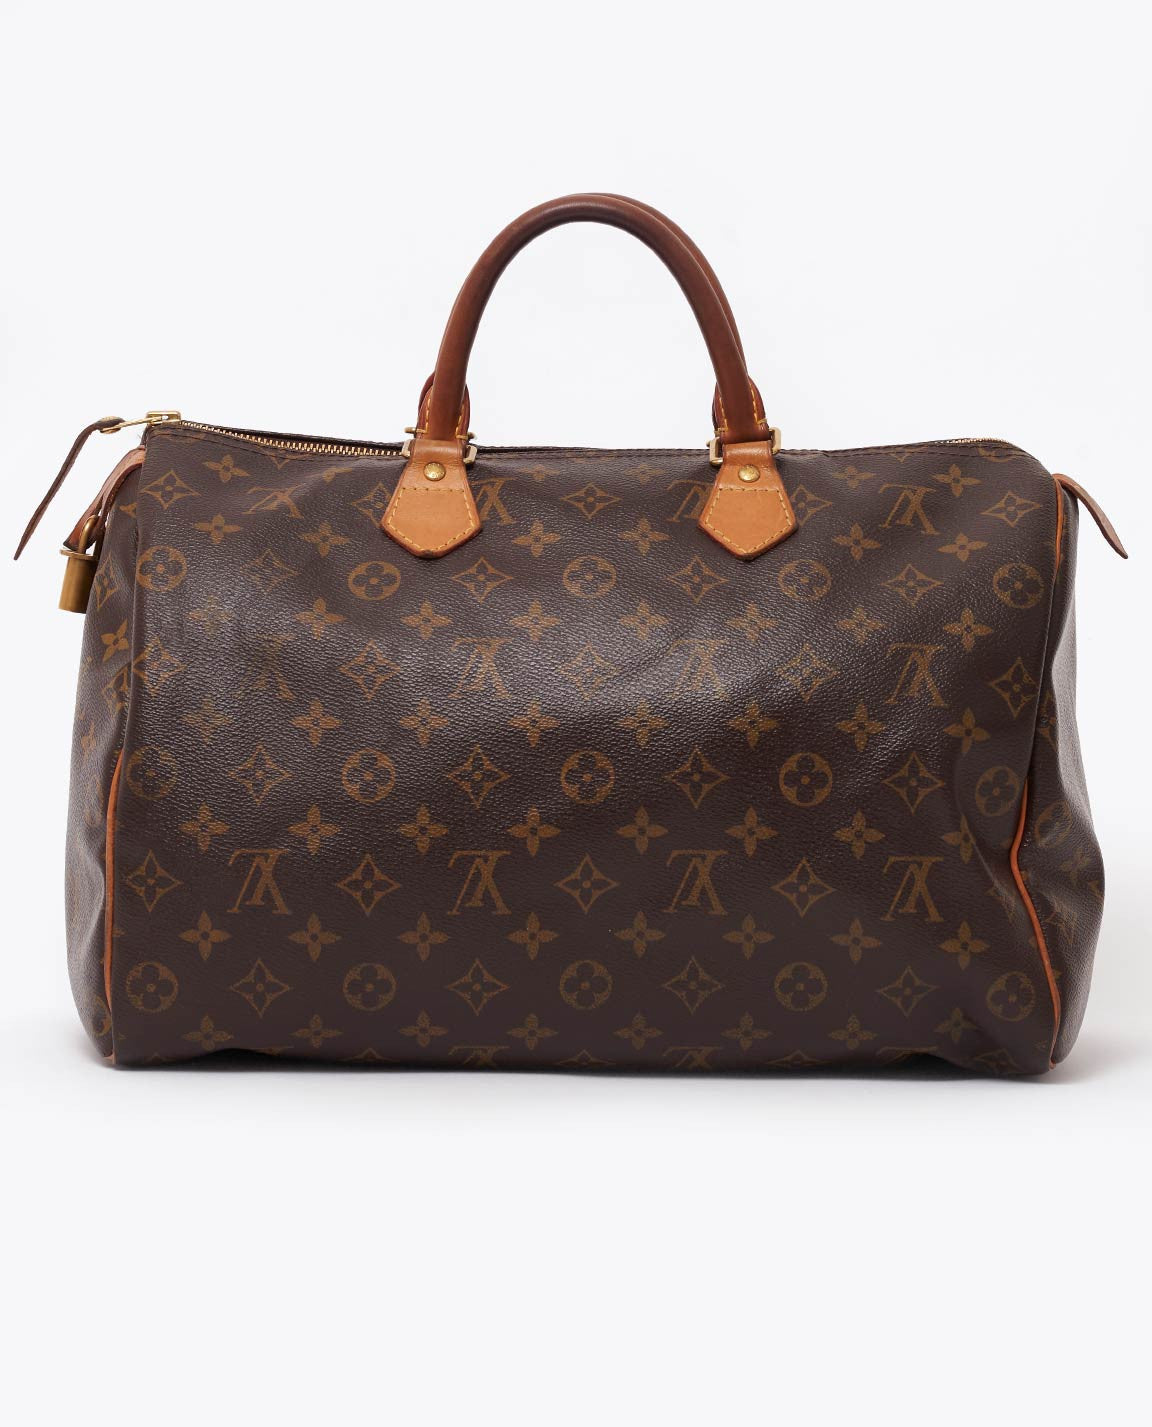 Vintage Louis Vuitton speedy 35